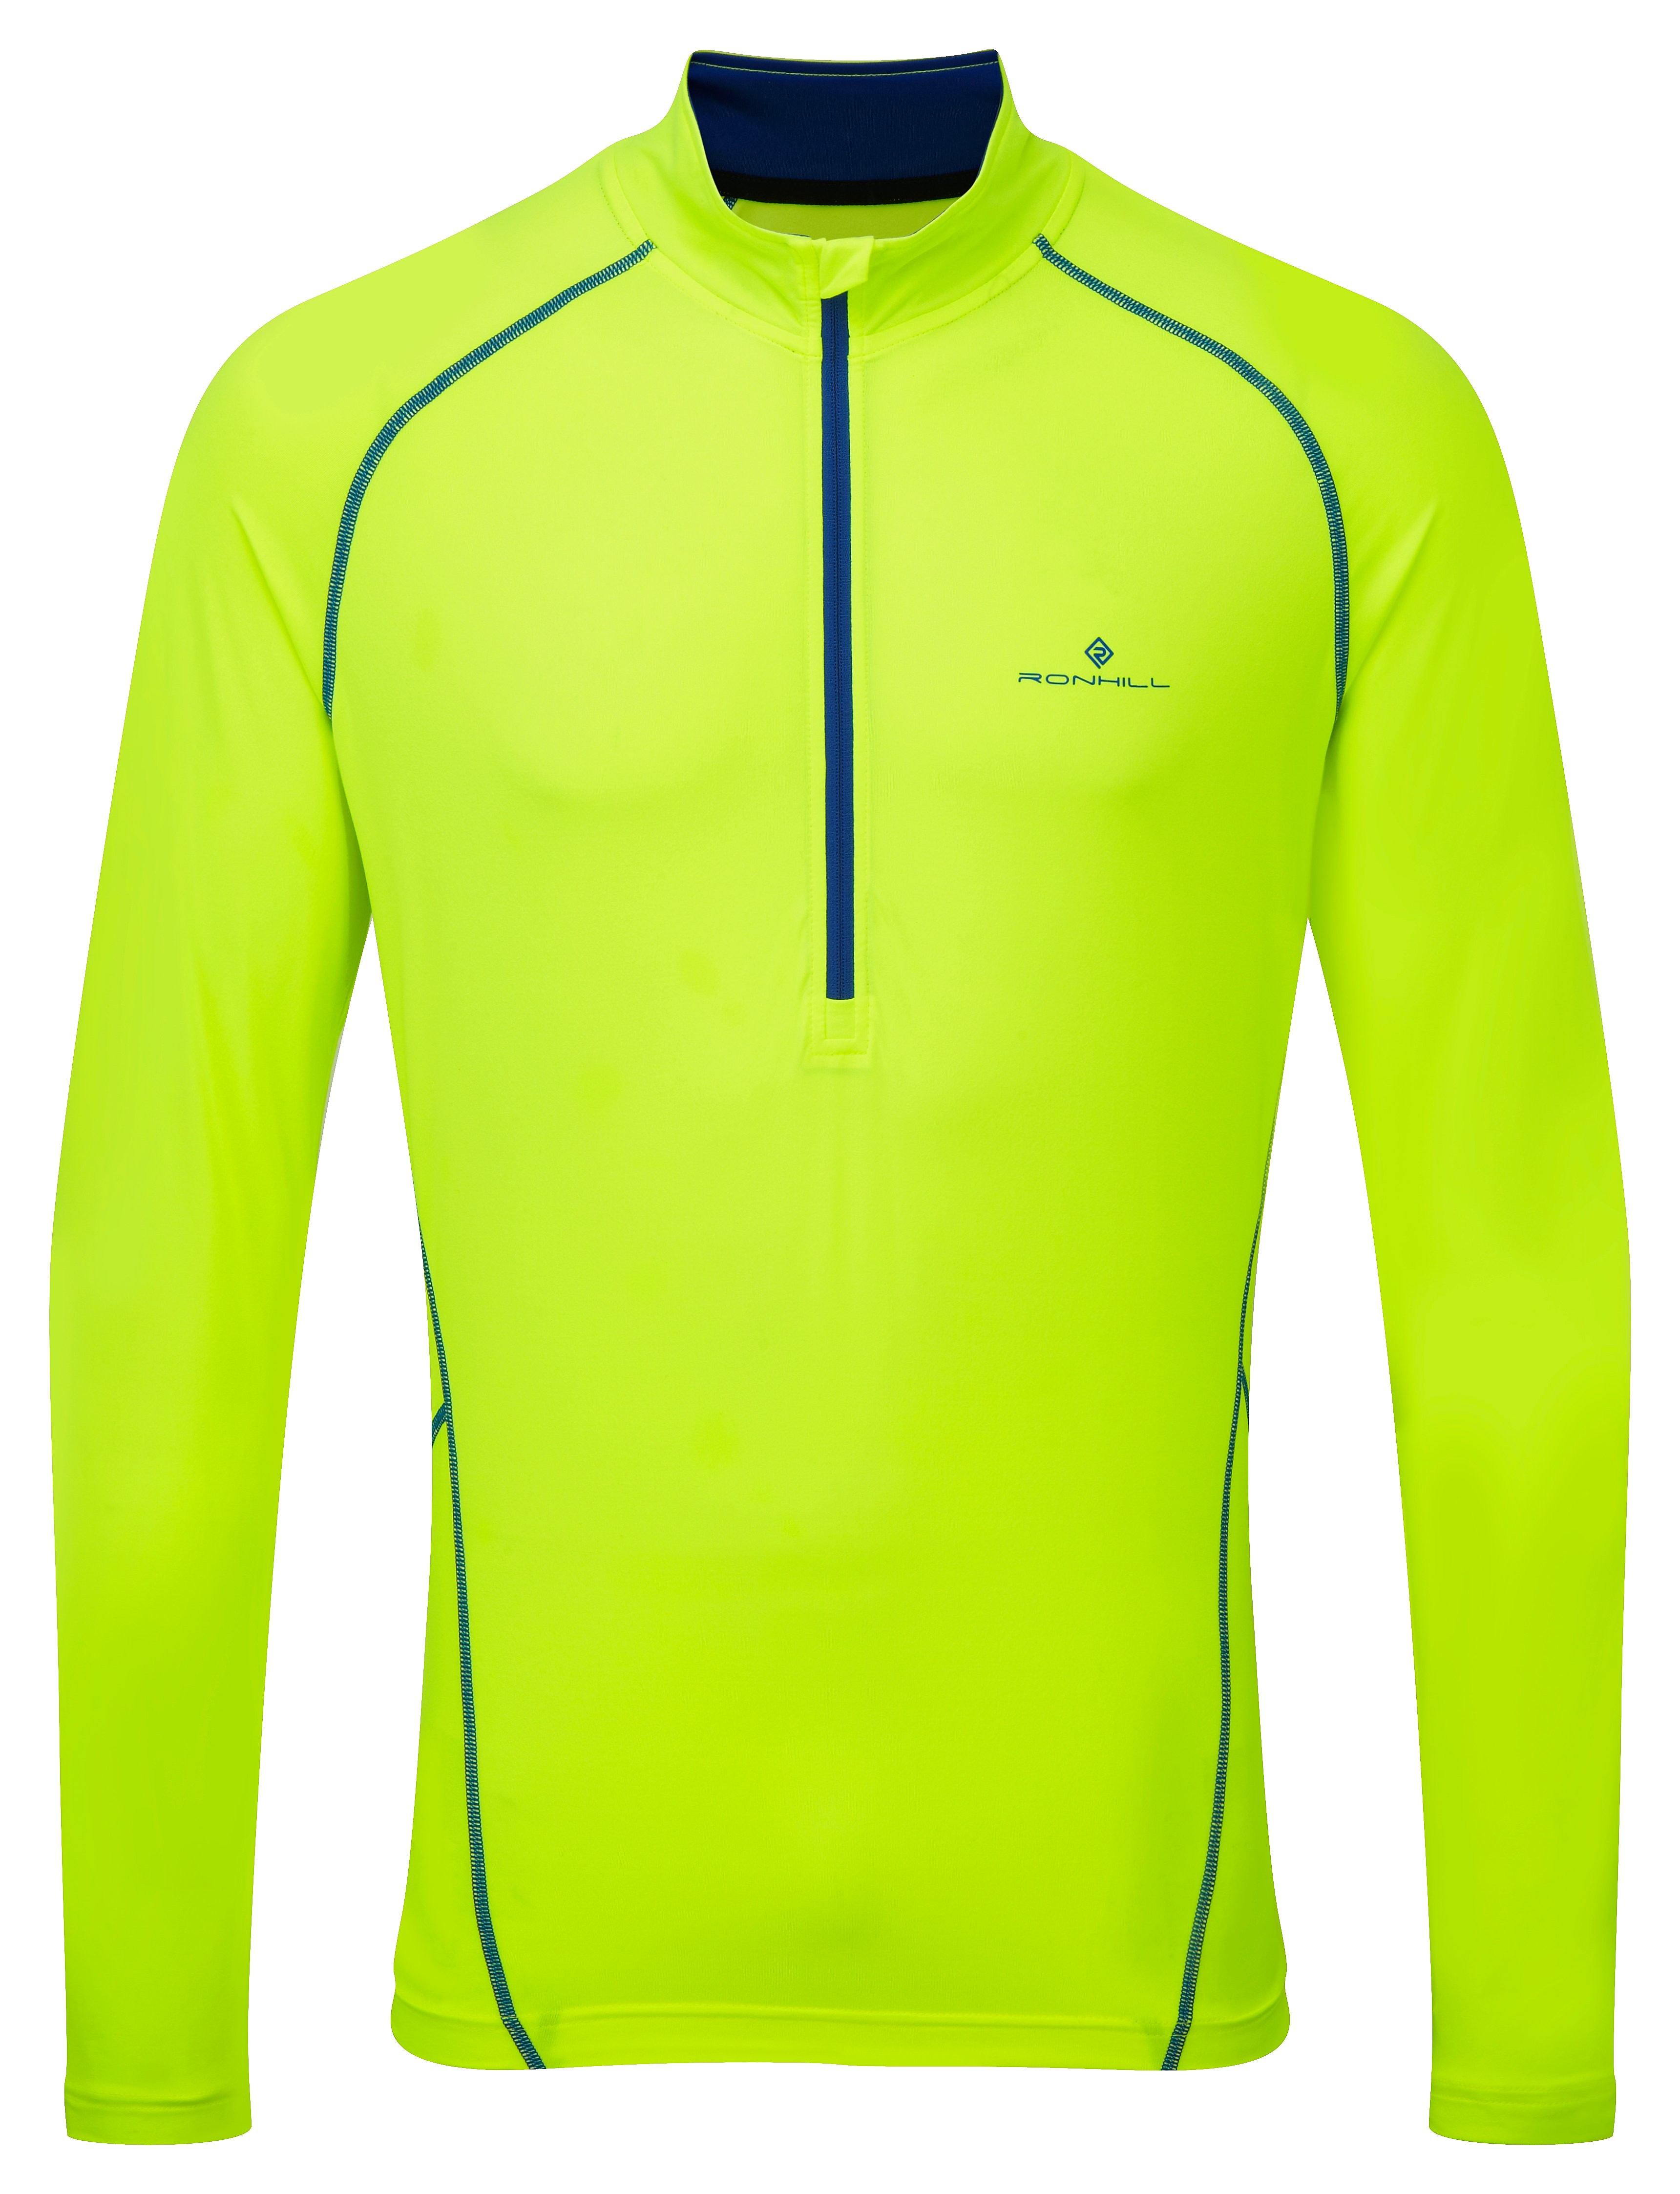 Ronhill Base Thermal 200 1/2 Zip Men's Top